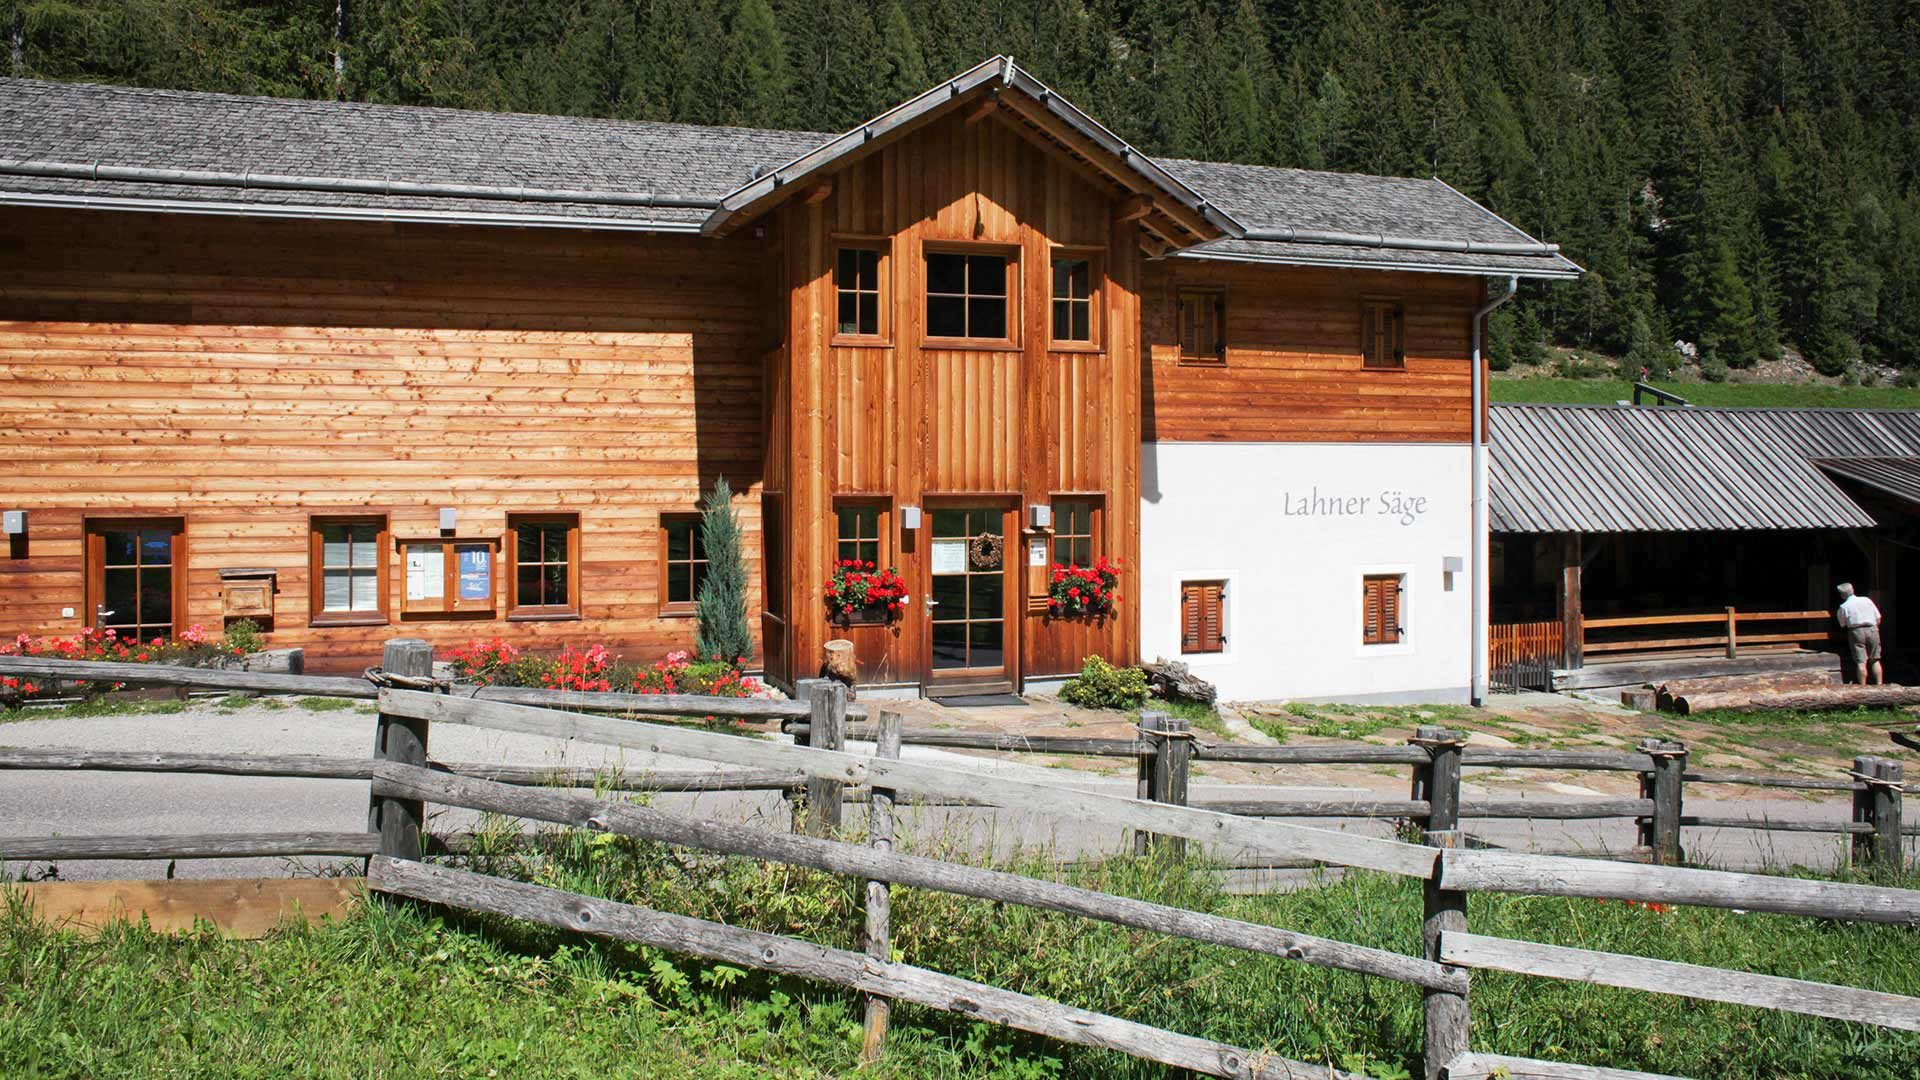 """Centro visite """"Lahnersäge"""" in Val d'Ultimo"""